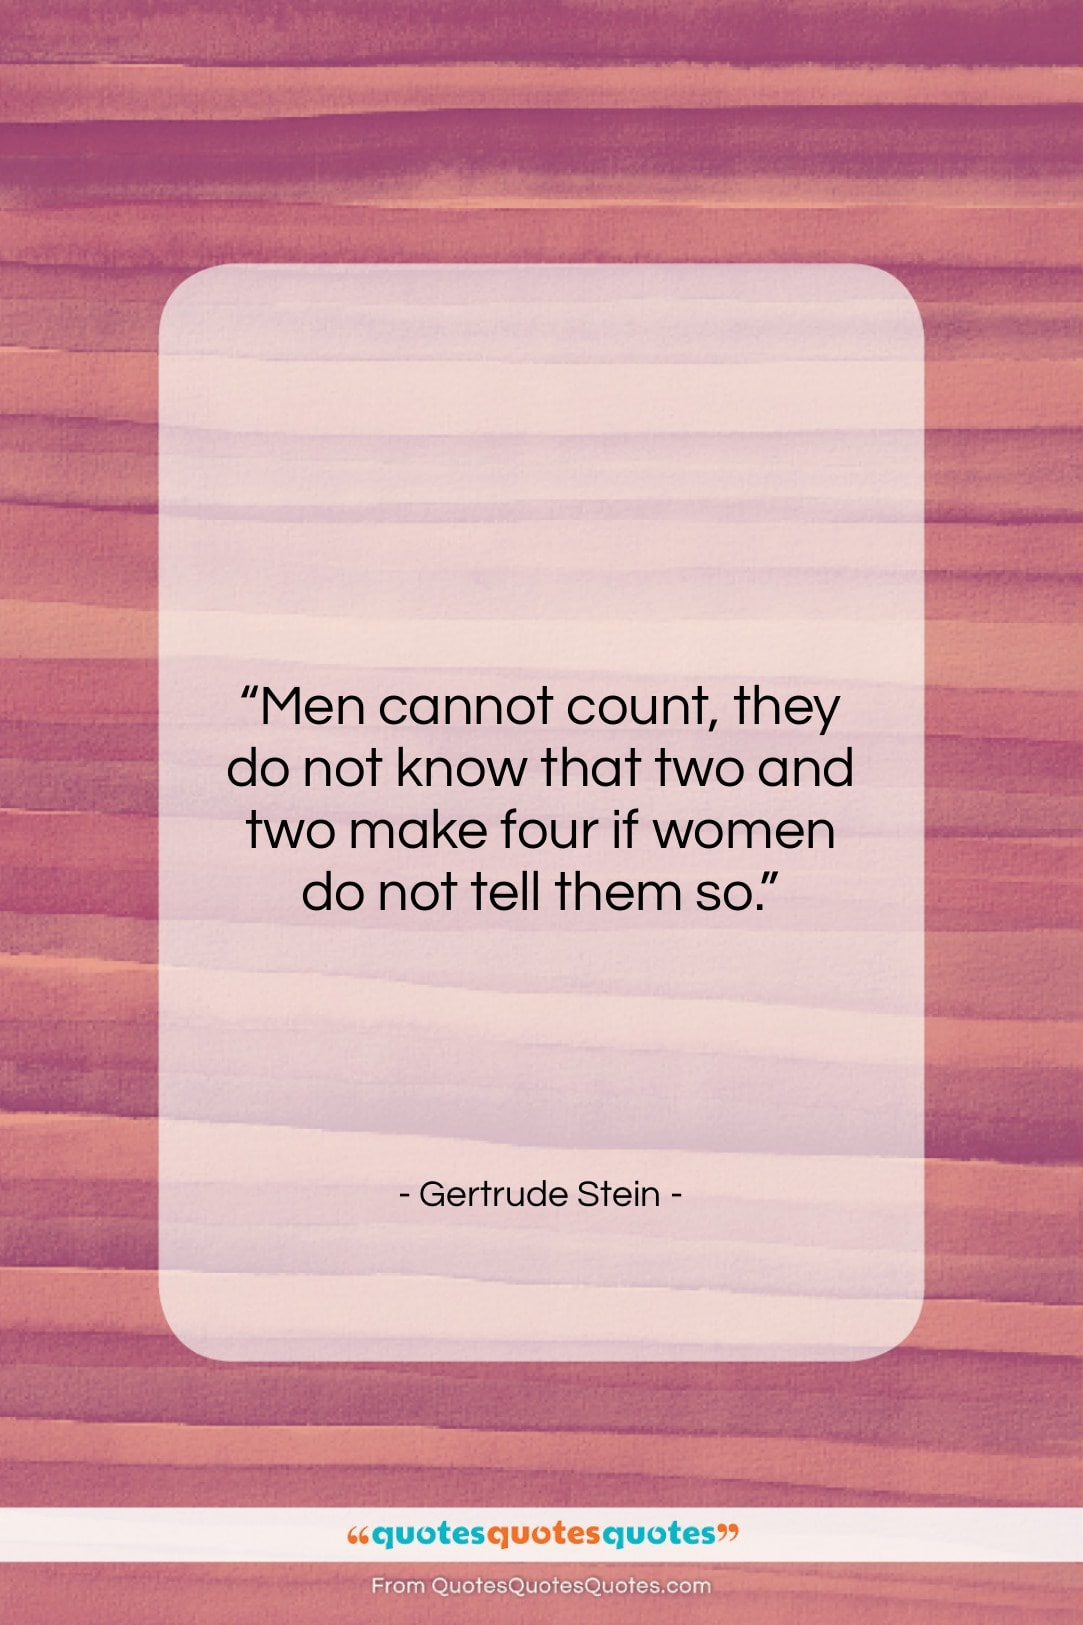 """Gertrude Stein quote: """"Men cannot count, they do not know…""""- at QuotesQuotesQuotes.com"""